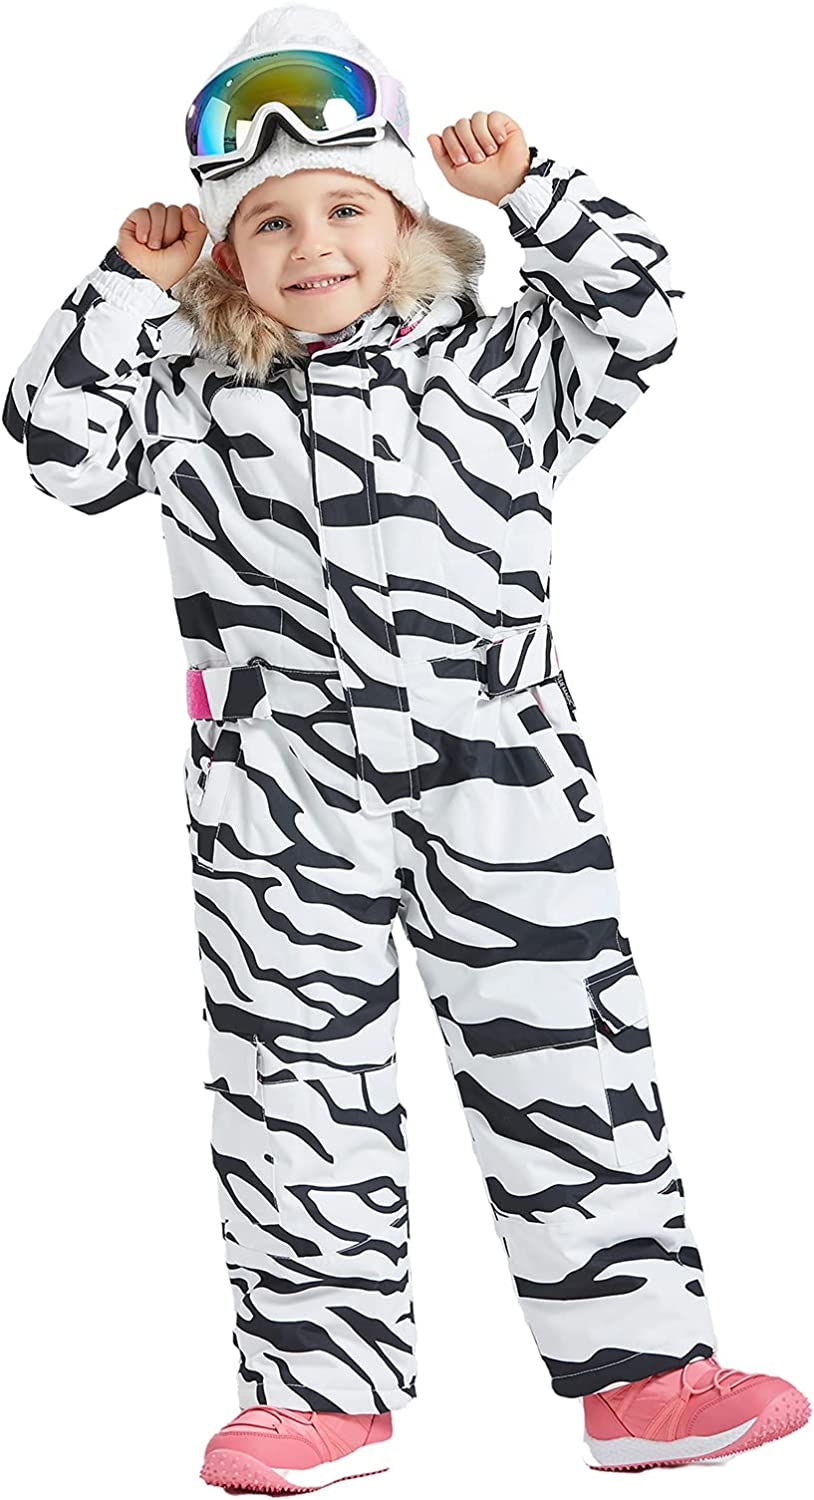 SNBOCON Kids Girls Boys Waterproof Colorful One SALENEW very Direct store popular Coveralls Piece